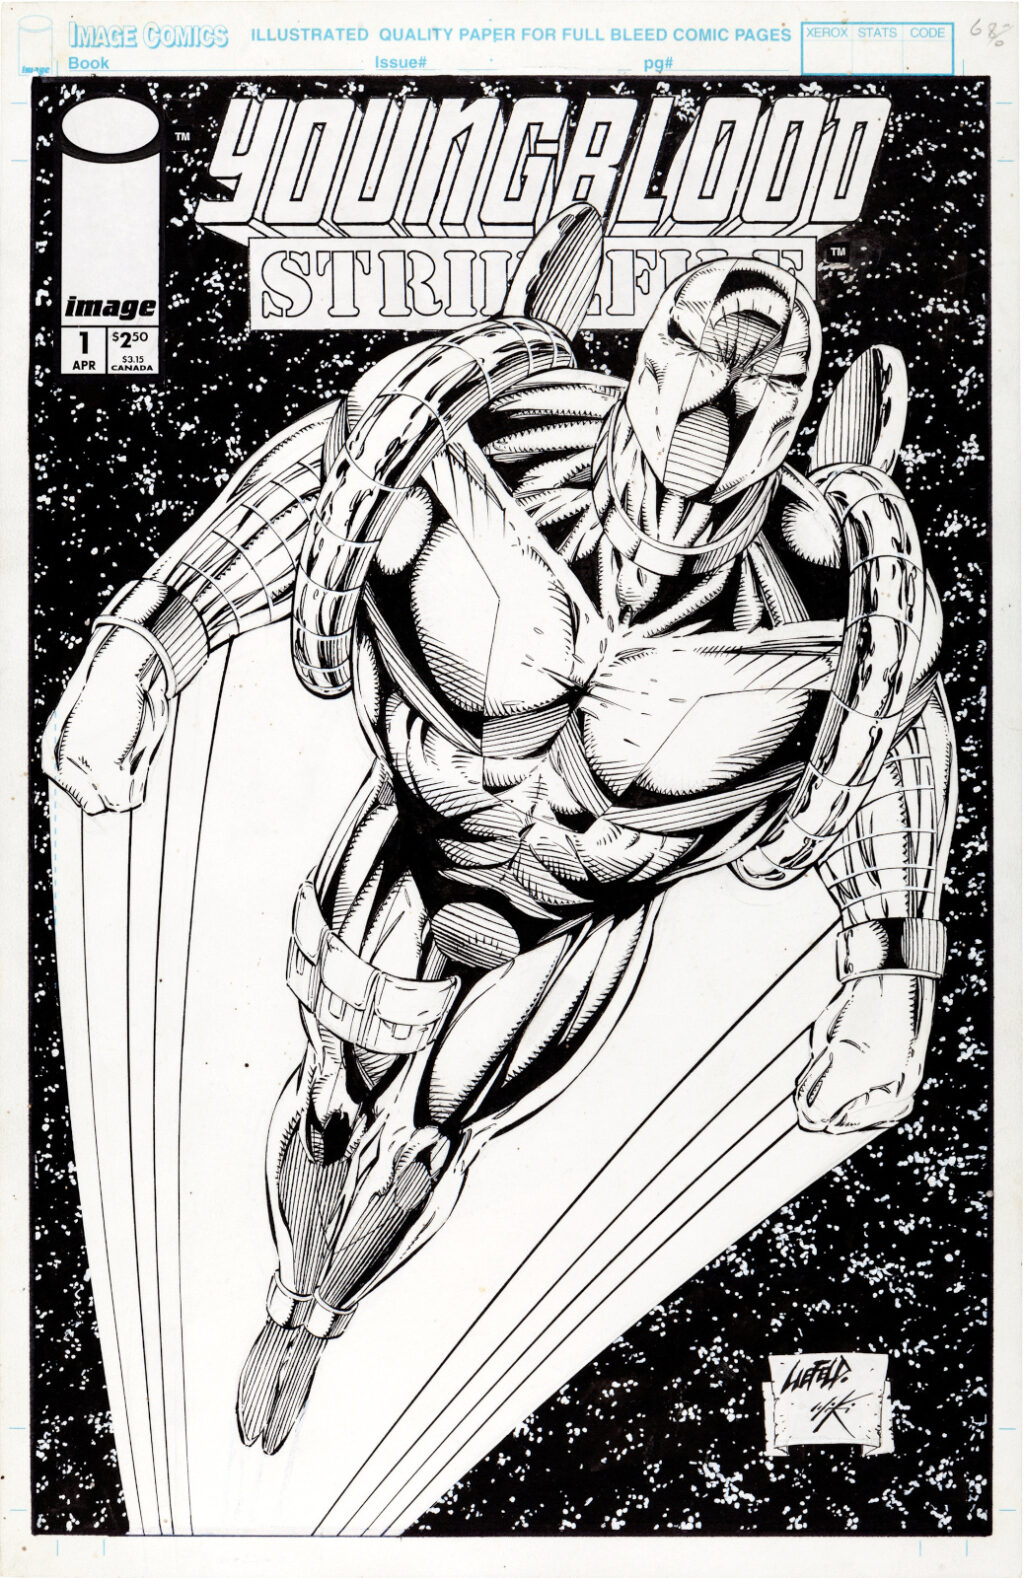 Youngblood Strikefile issue 1 cover by Rob Liefeld and Danny Miki